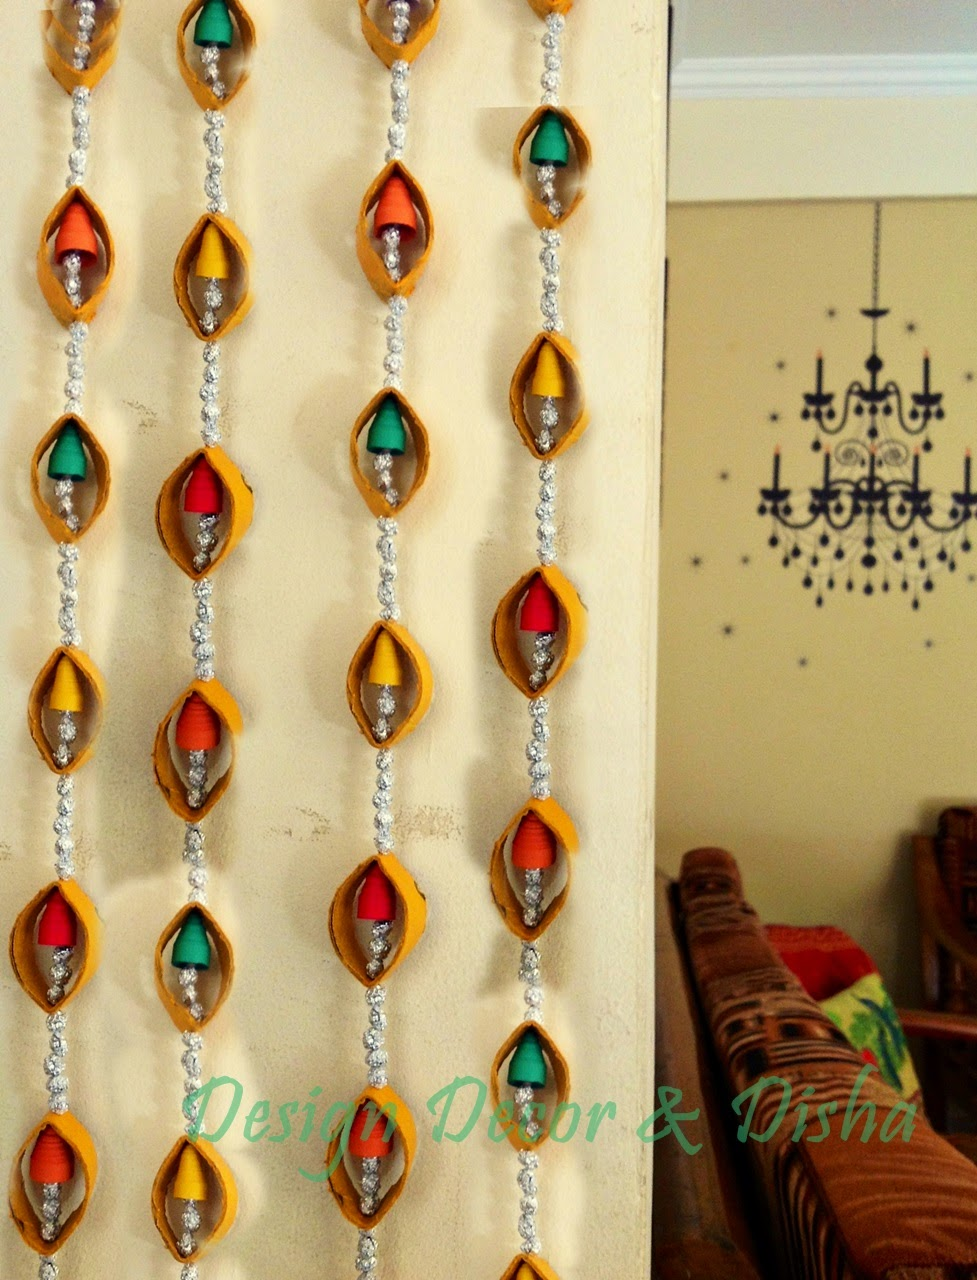 Design decor disha an indian design decor blog diy for Art and craft for diwali decoration